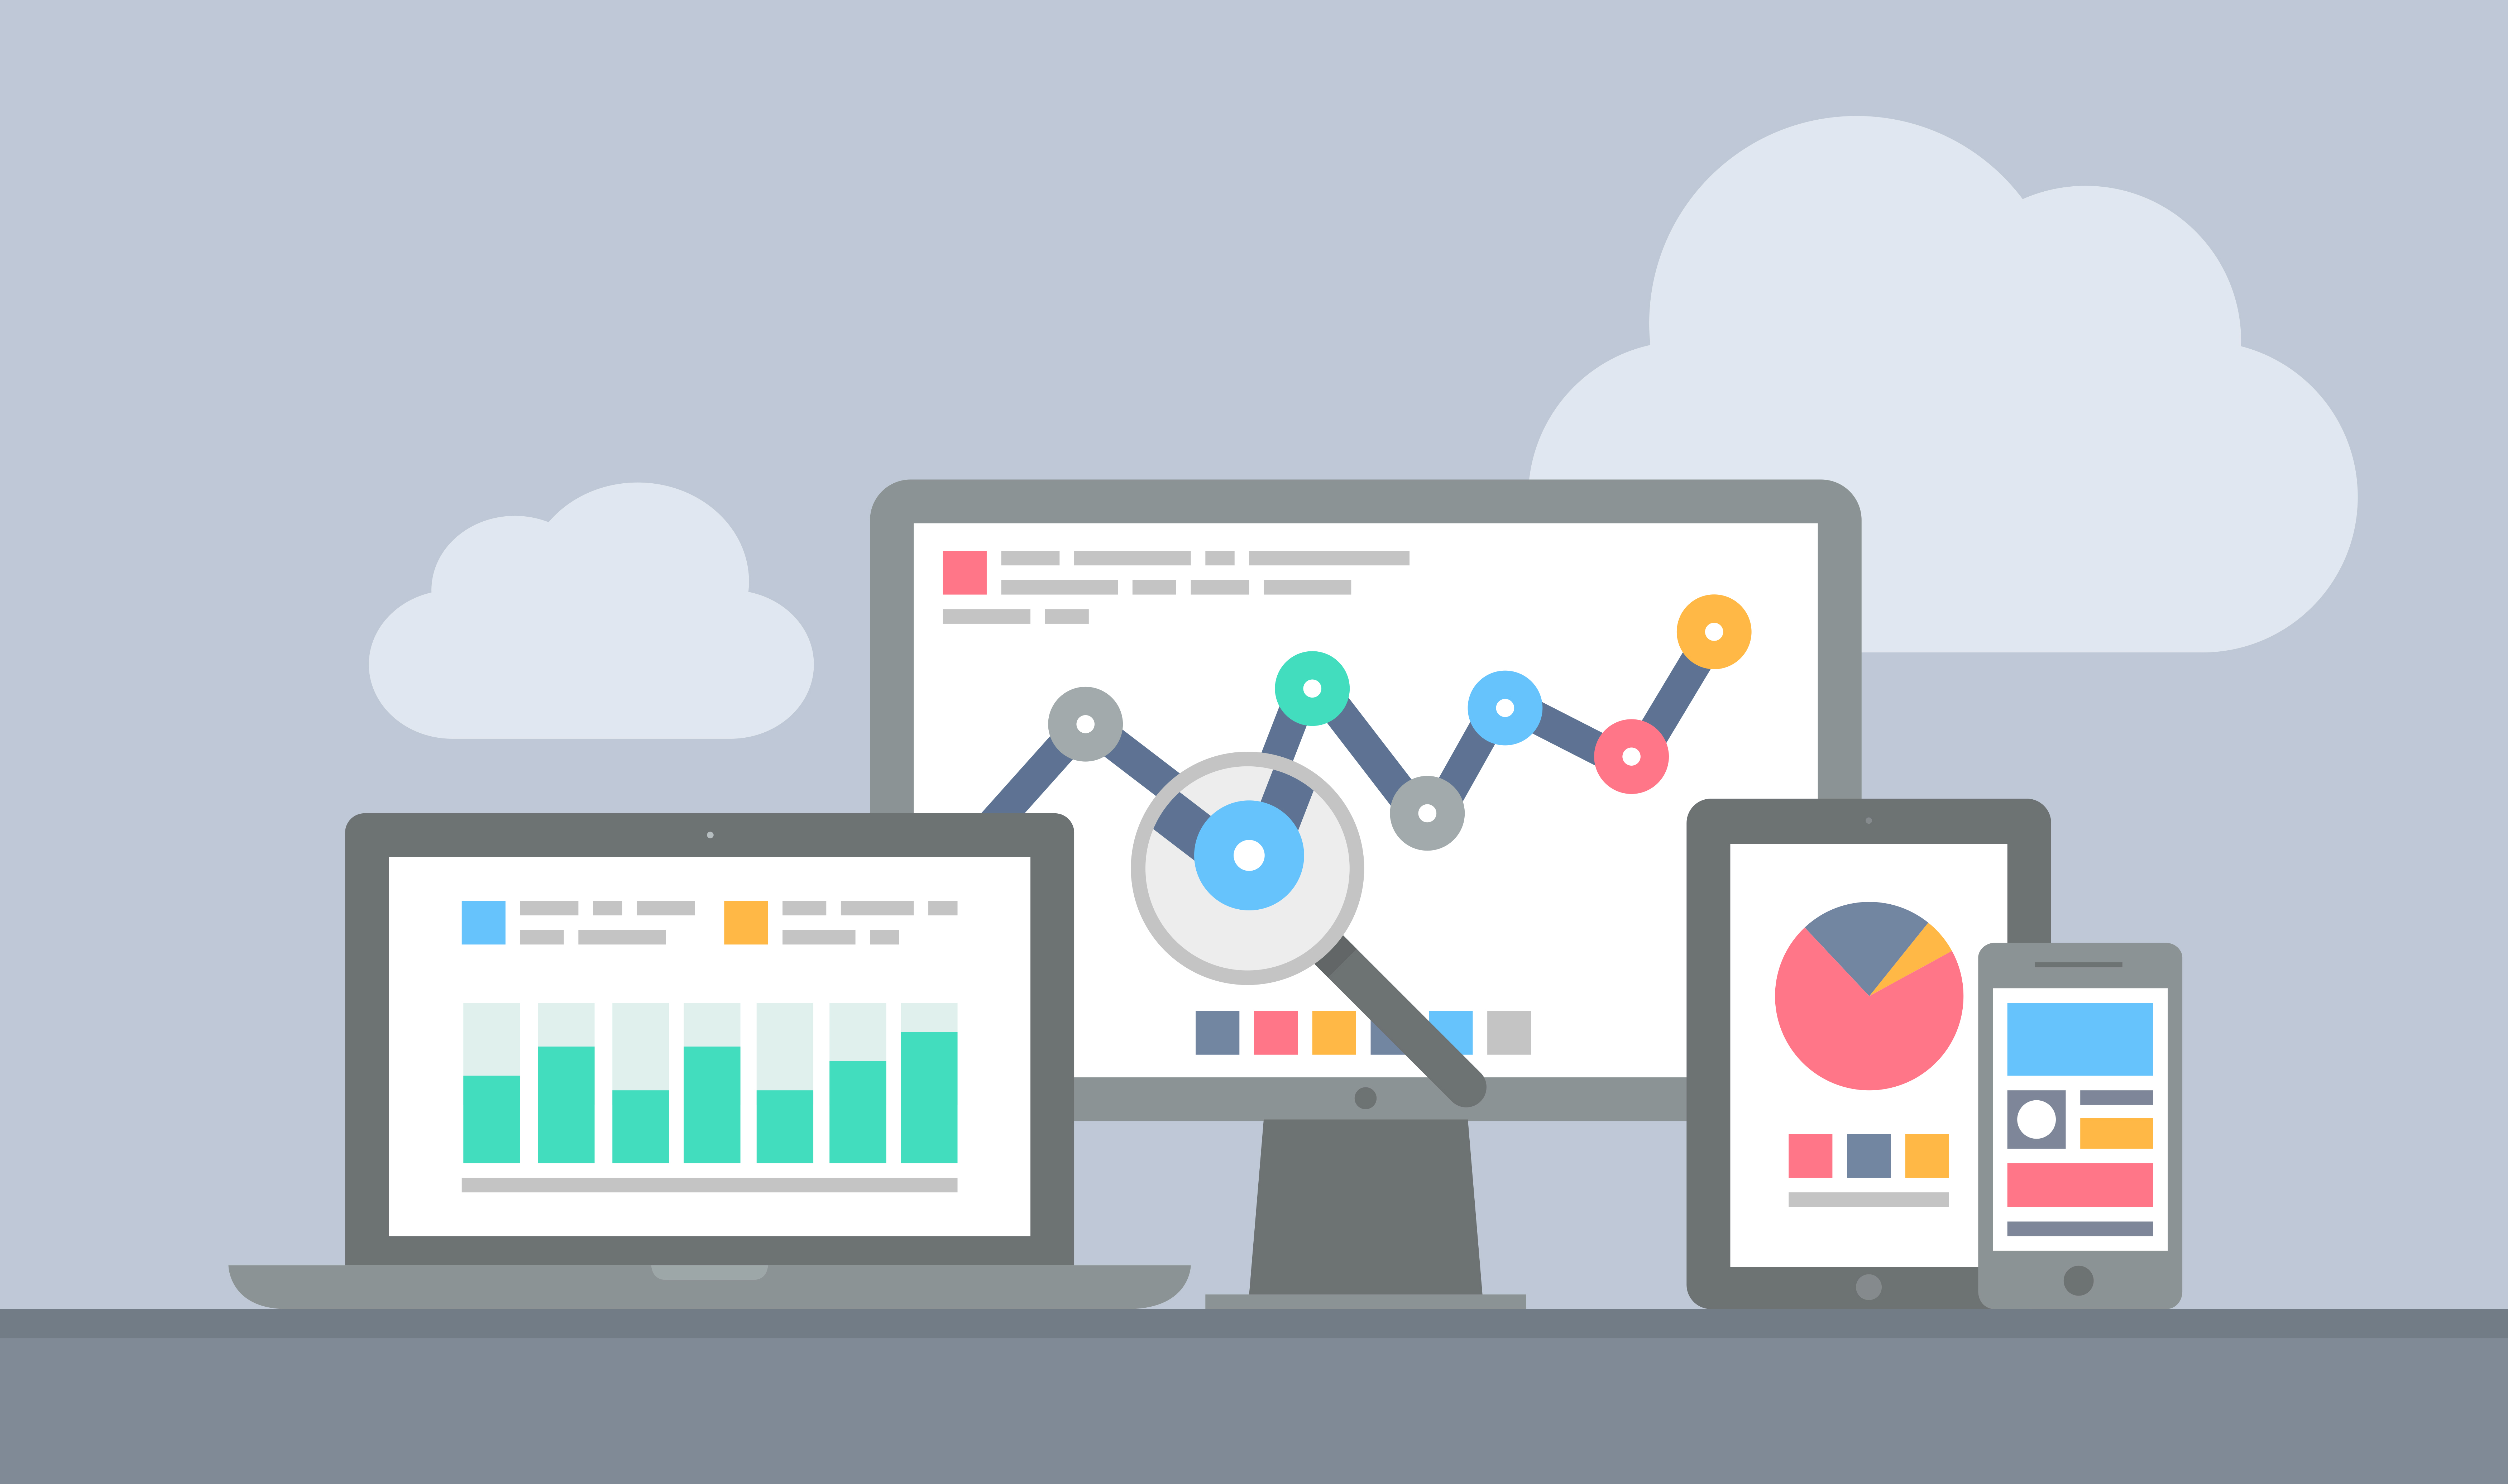 website_analytics_development_vector_design_mobile_computing_analysis_web_flat_icons_modern_business_chart_illustration_concept